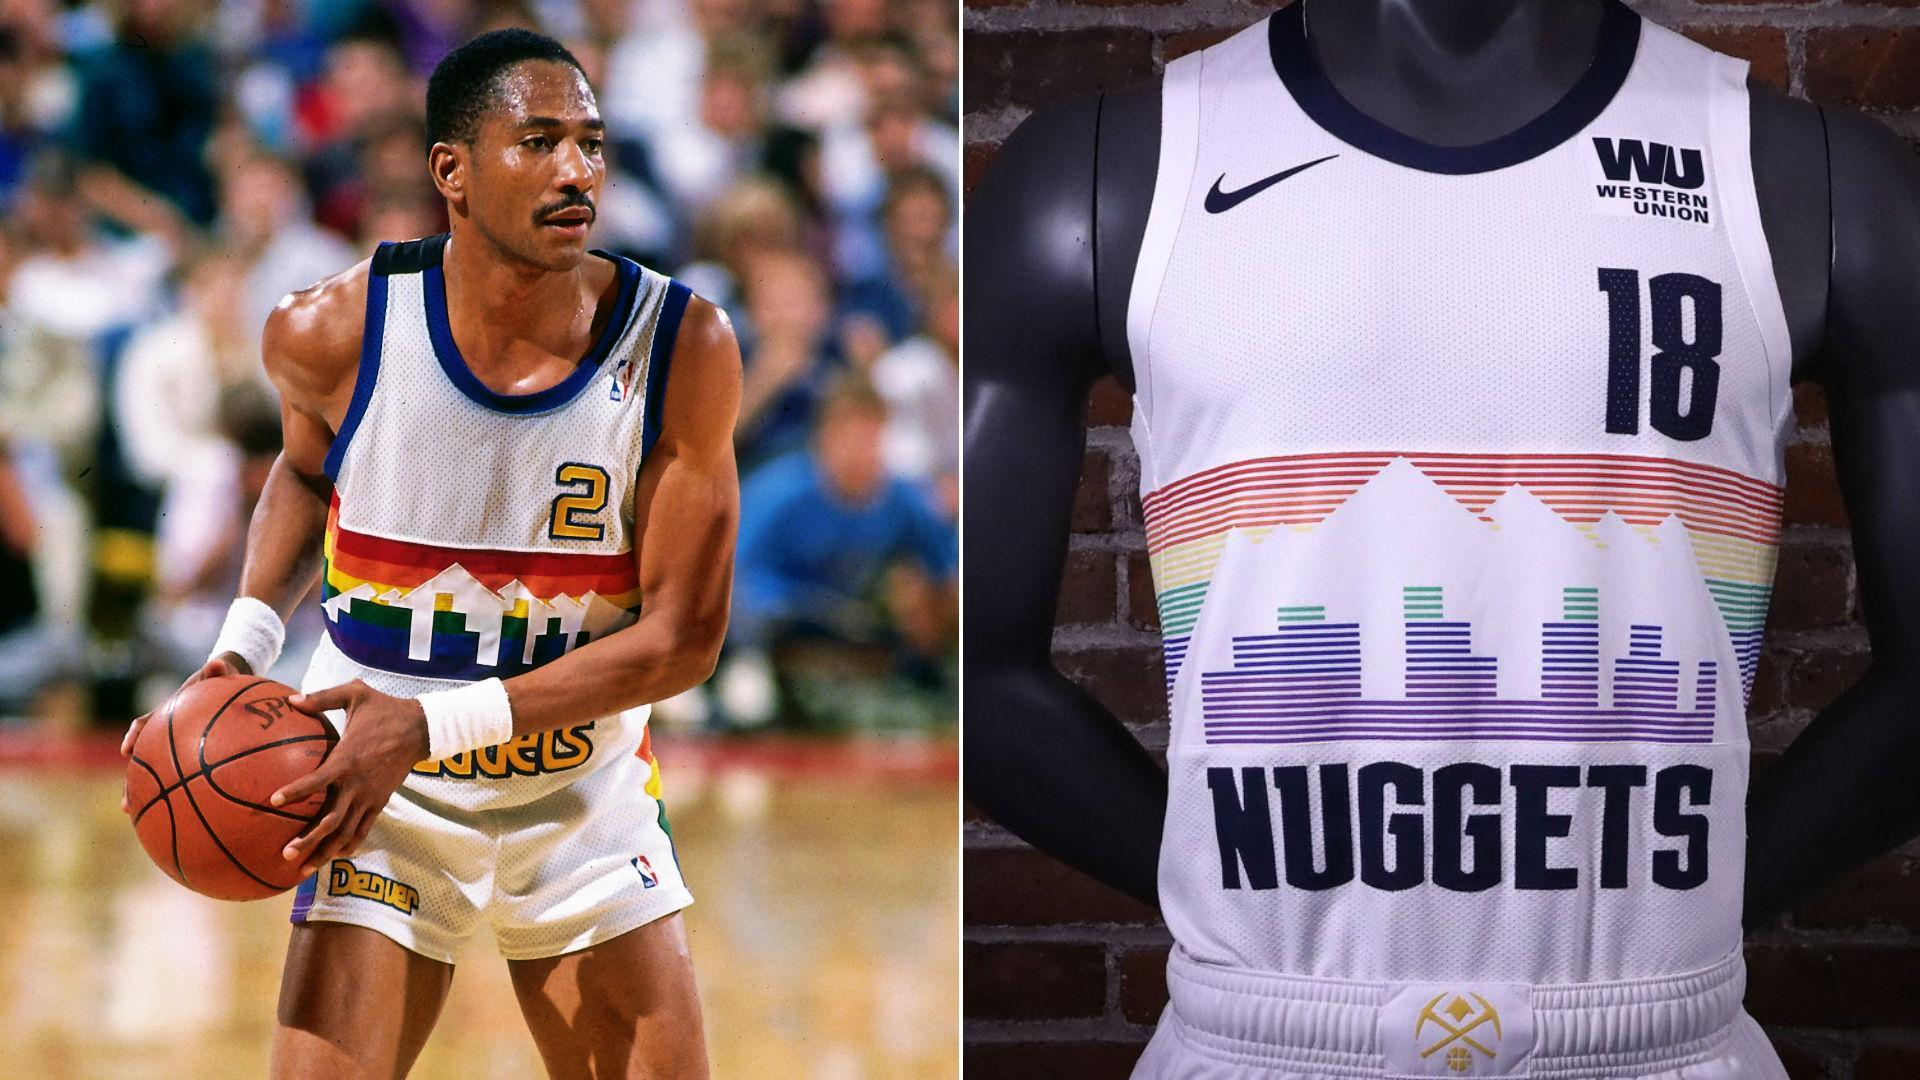 Denver opted to throw back to the uniforms the team wore from 1981-82 to  1992-93 7dbe6cfd6